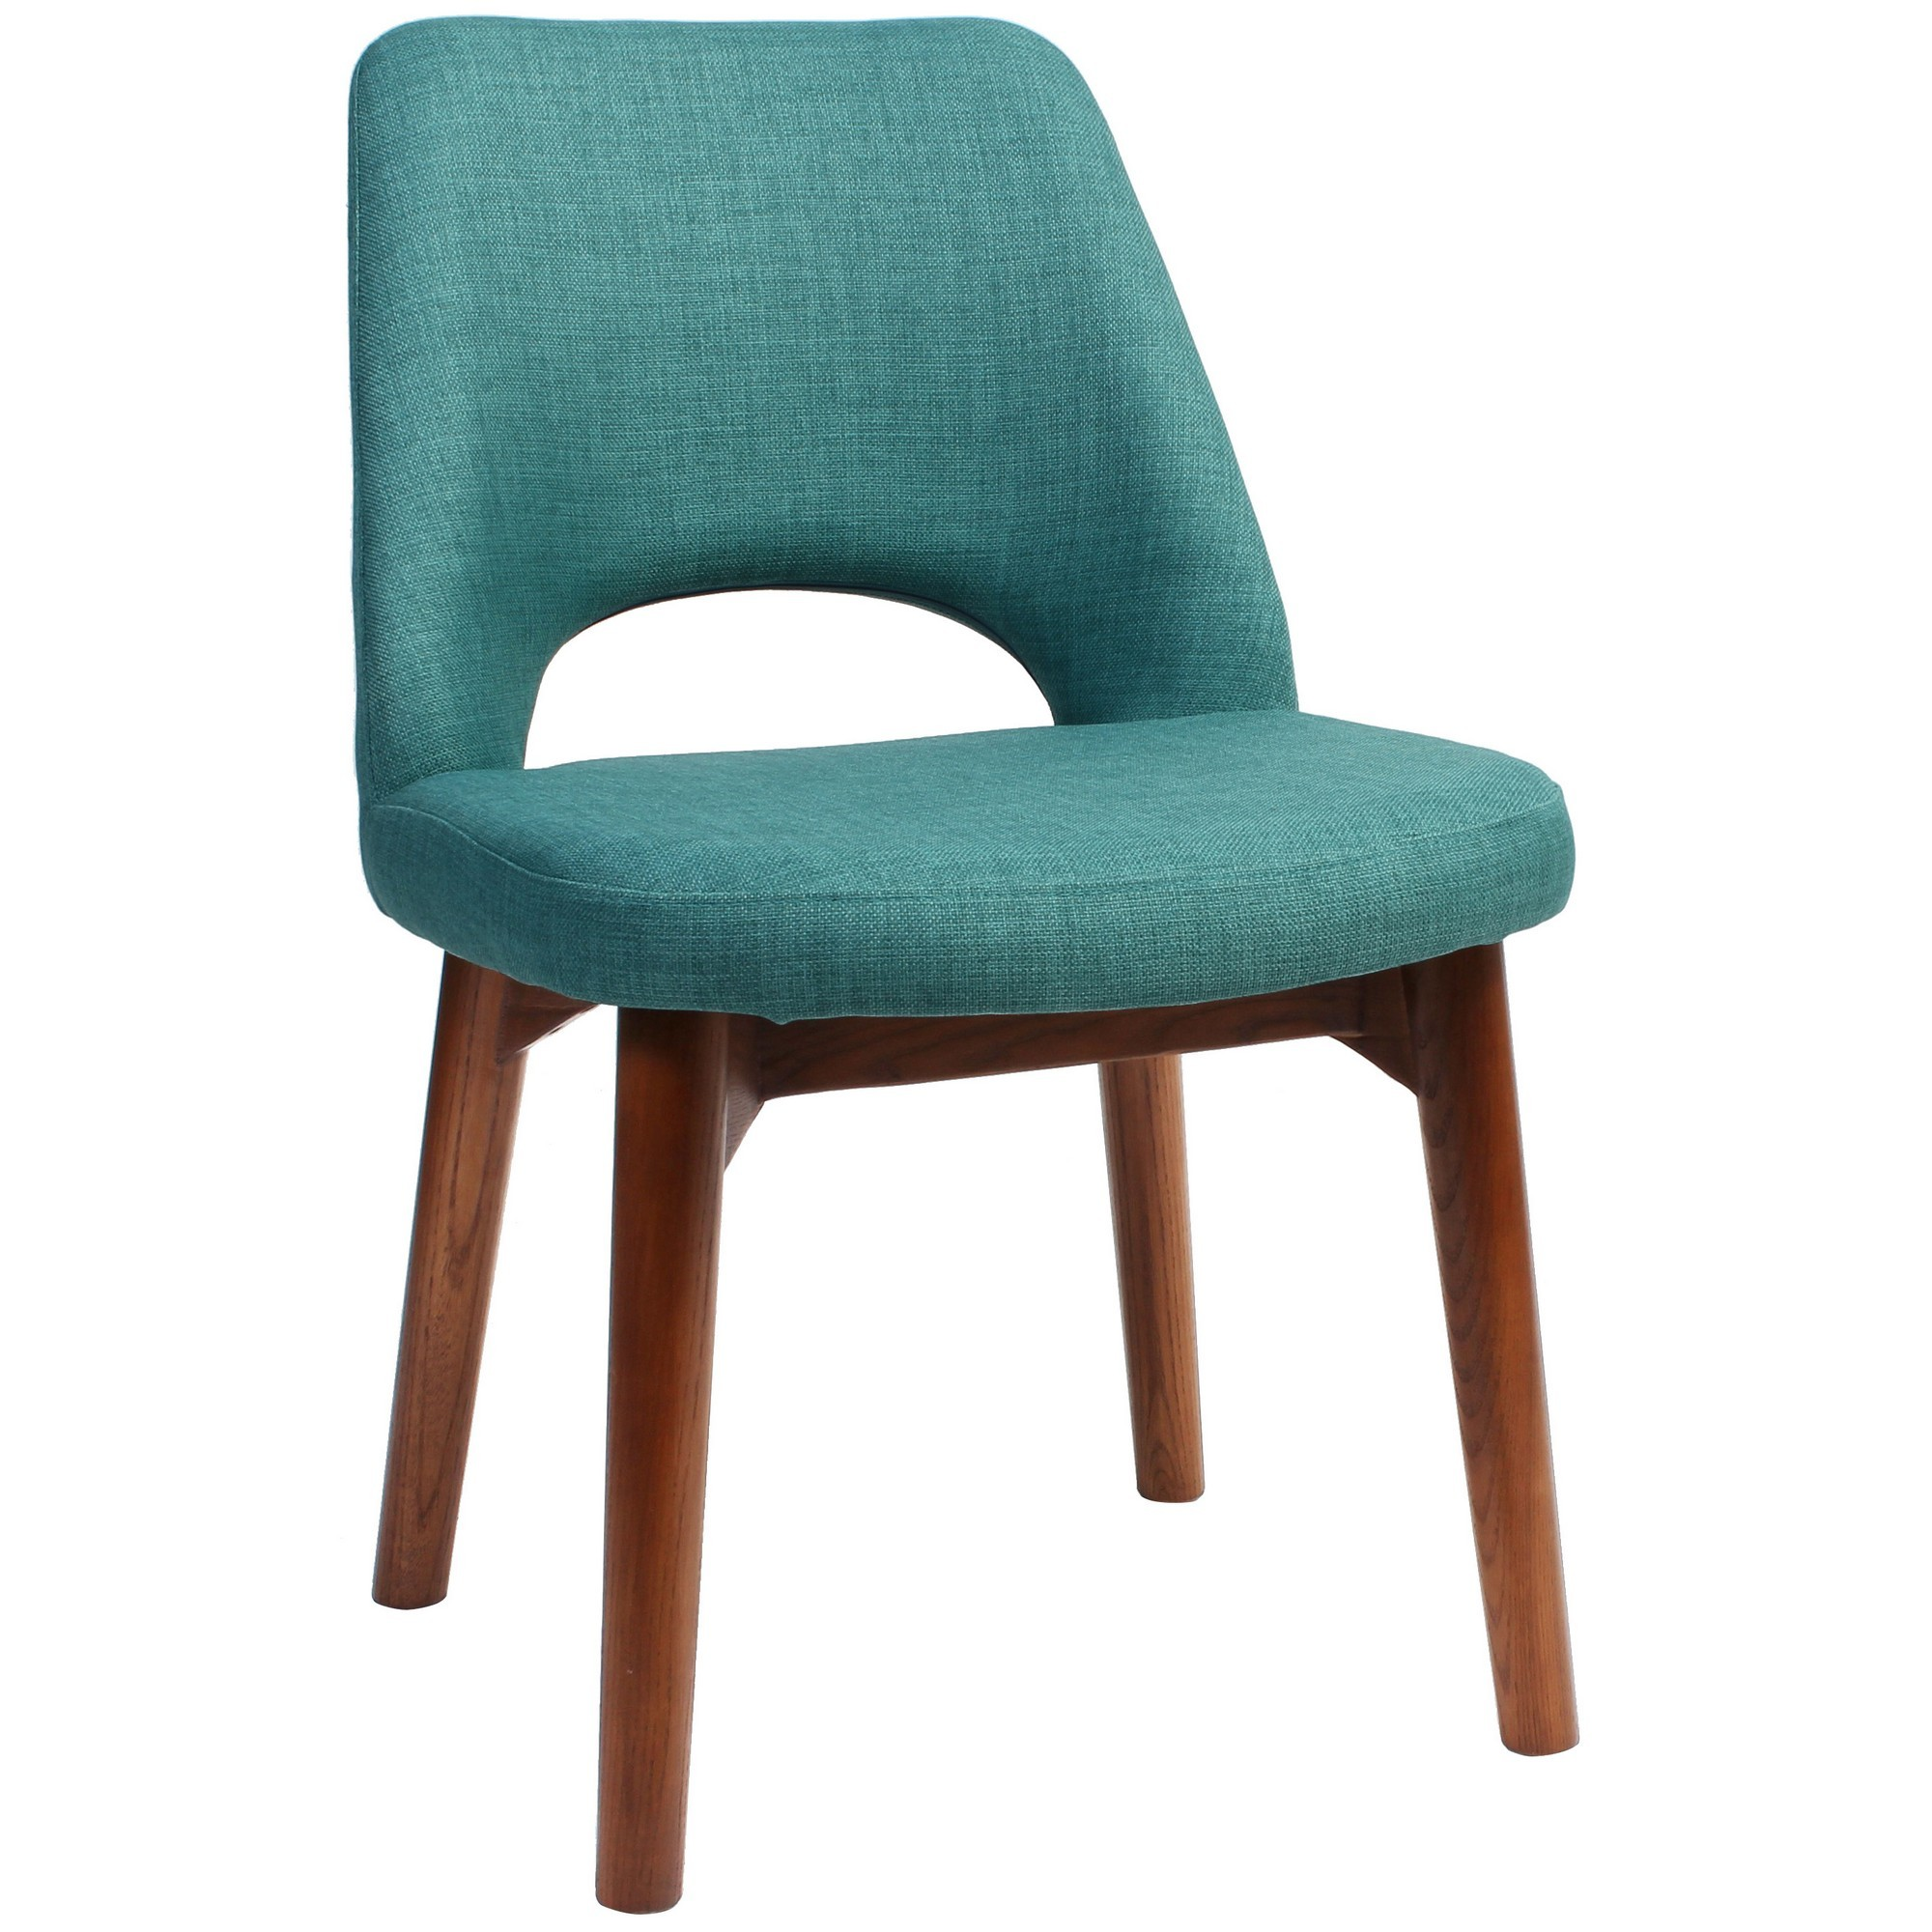 Albury Commercial Grade Fabric Dining Chair, Timber Leg, Teal / Light Walnut